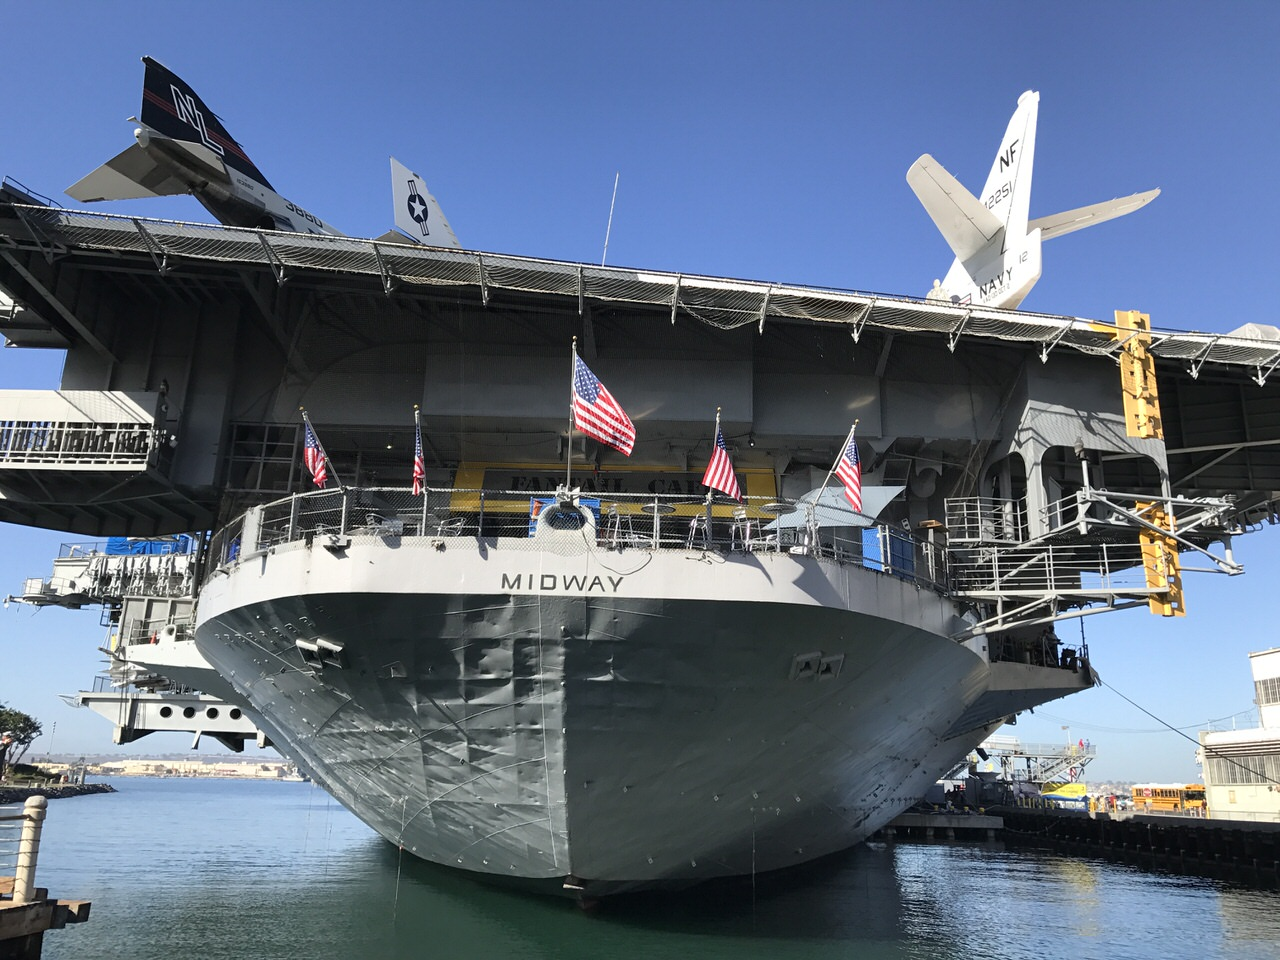 Uss midway museum 0547